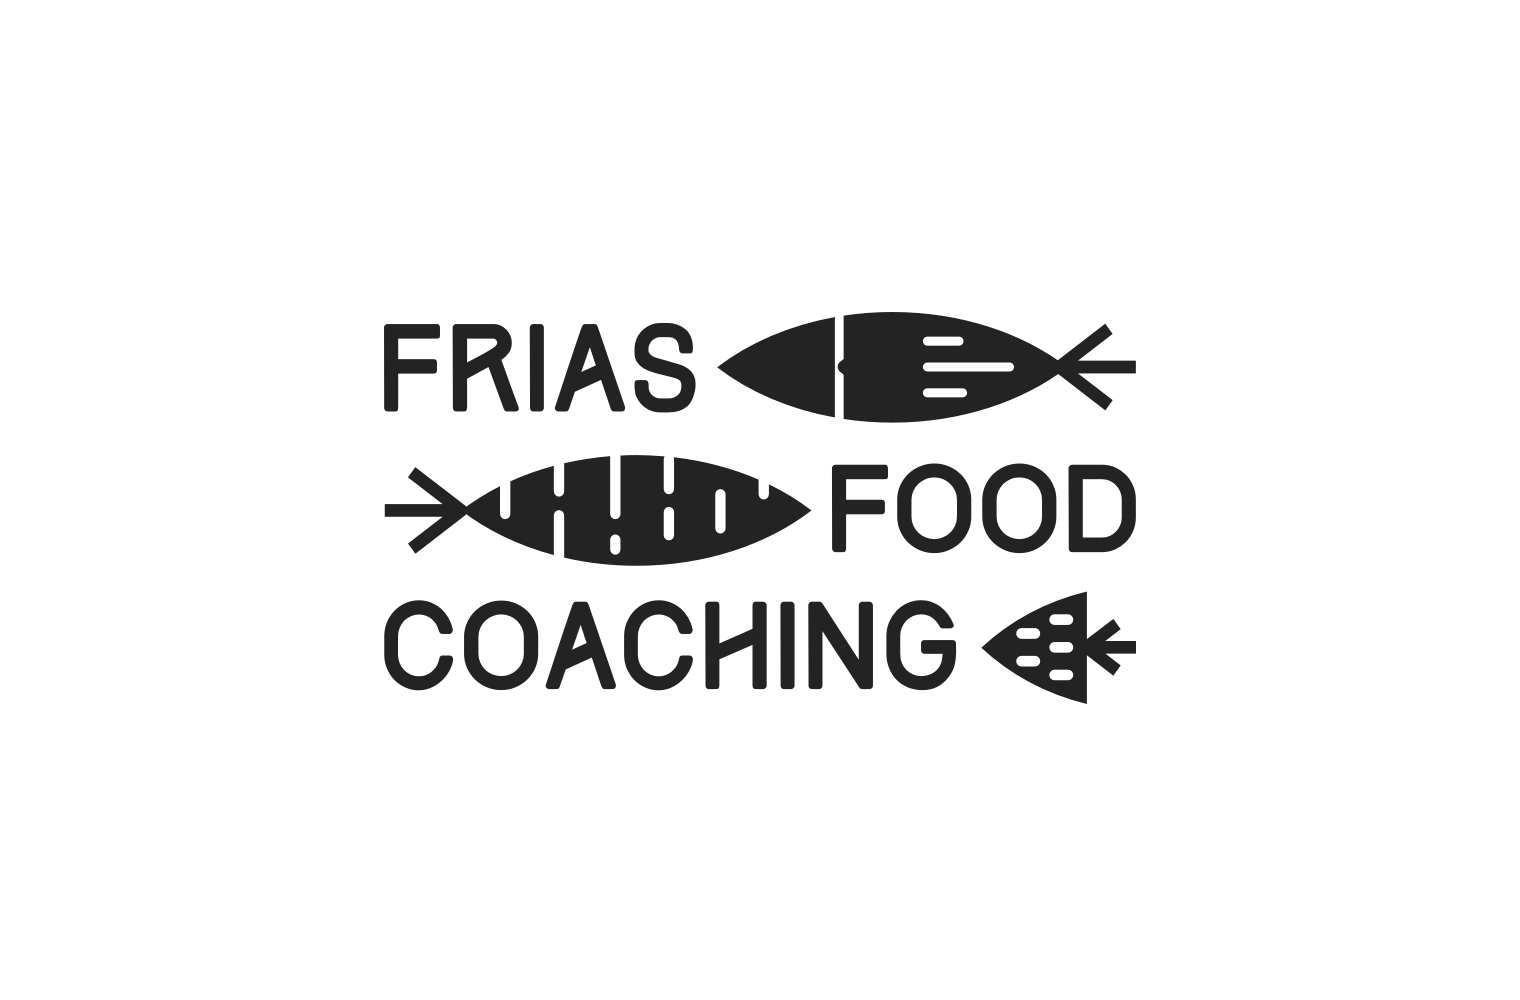 Frias Food Coaching